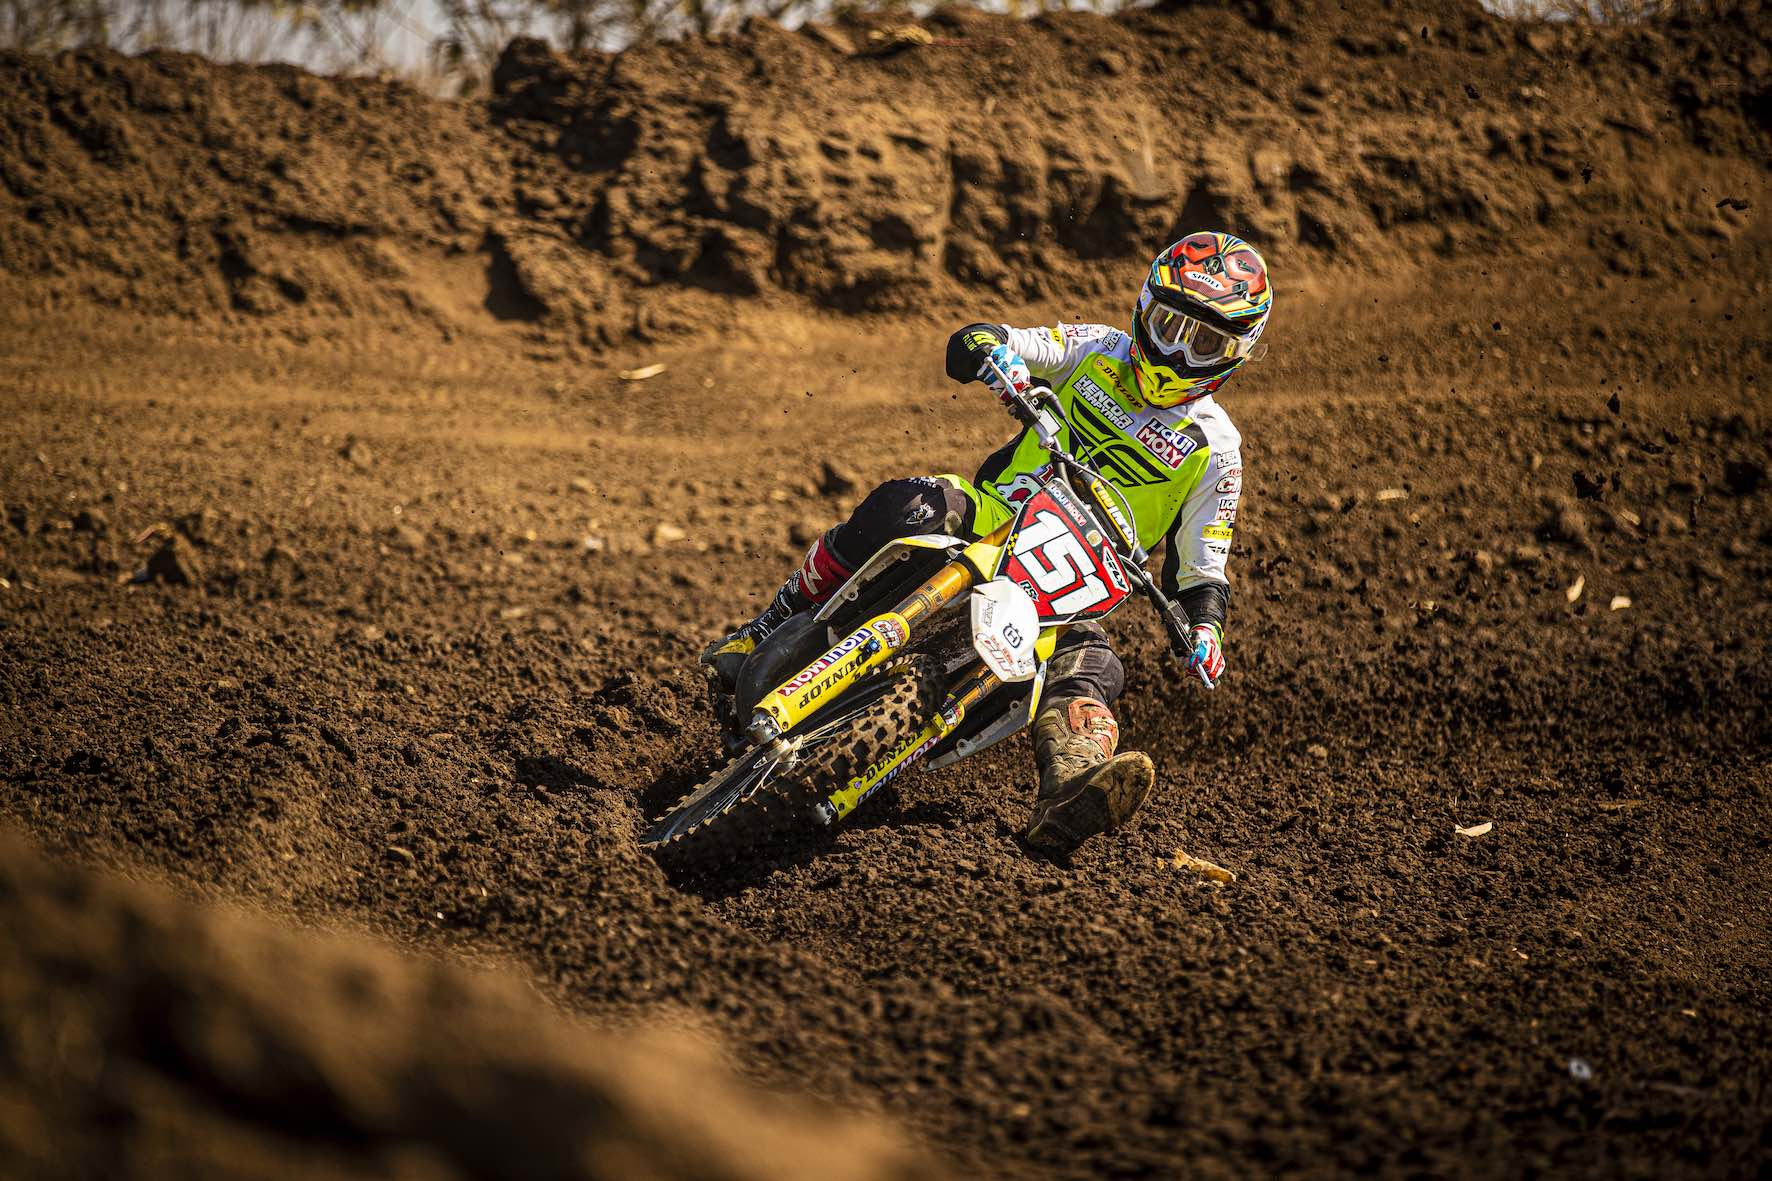 Dalton Venter racing in the 2019 South African National Motocross Championship in Pietermaritzburg